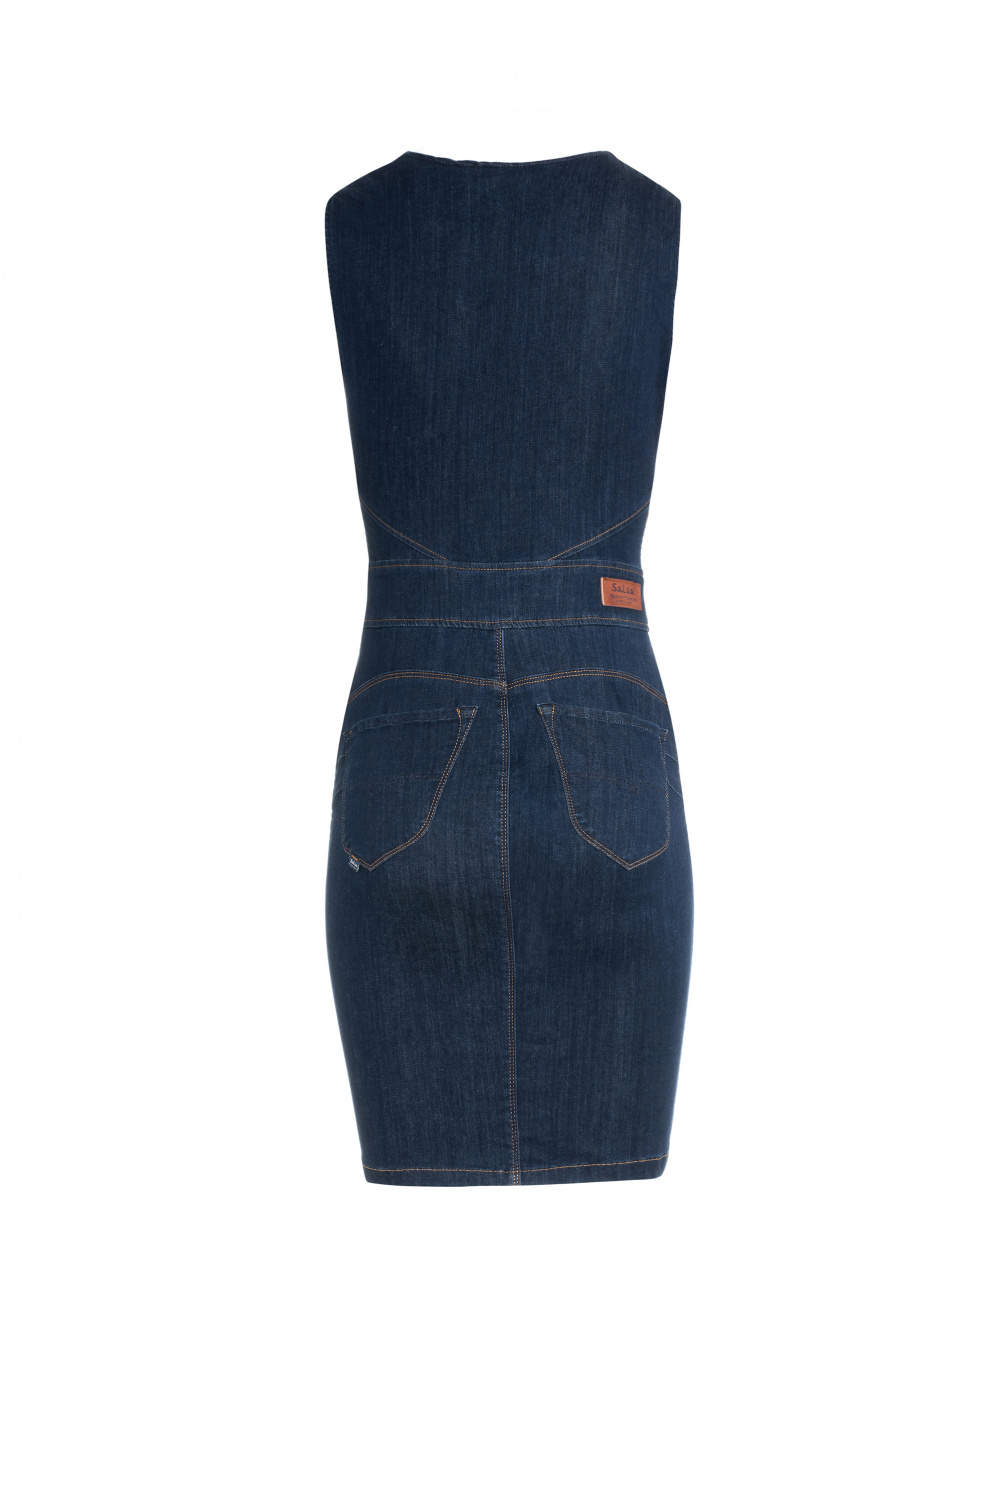 Secret Denim Dress